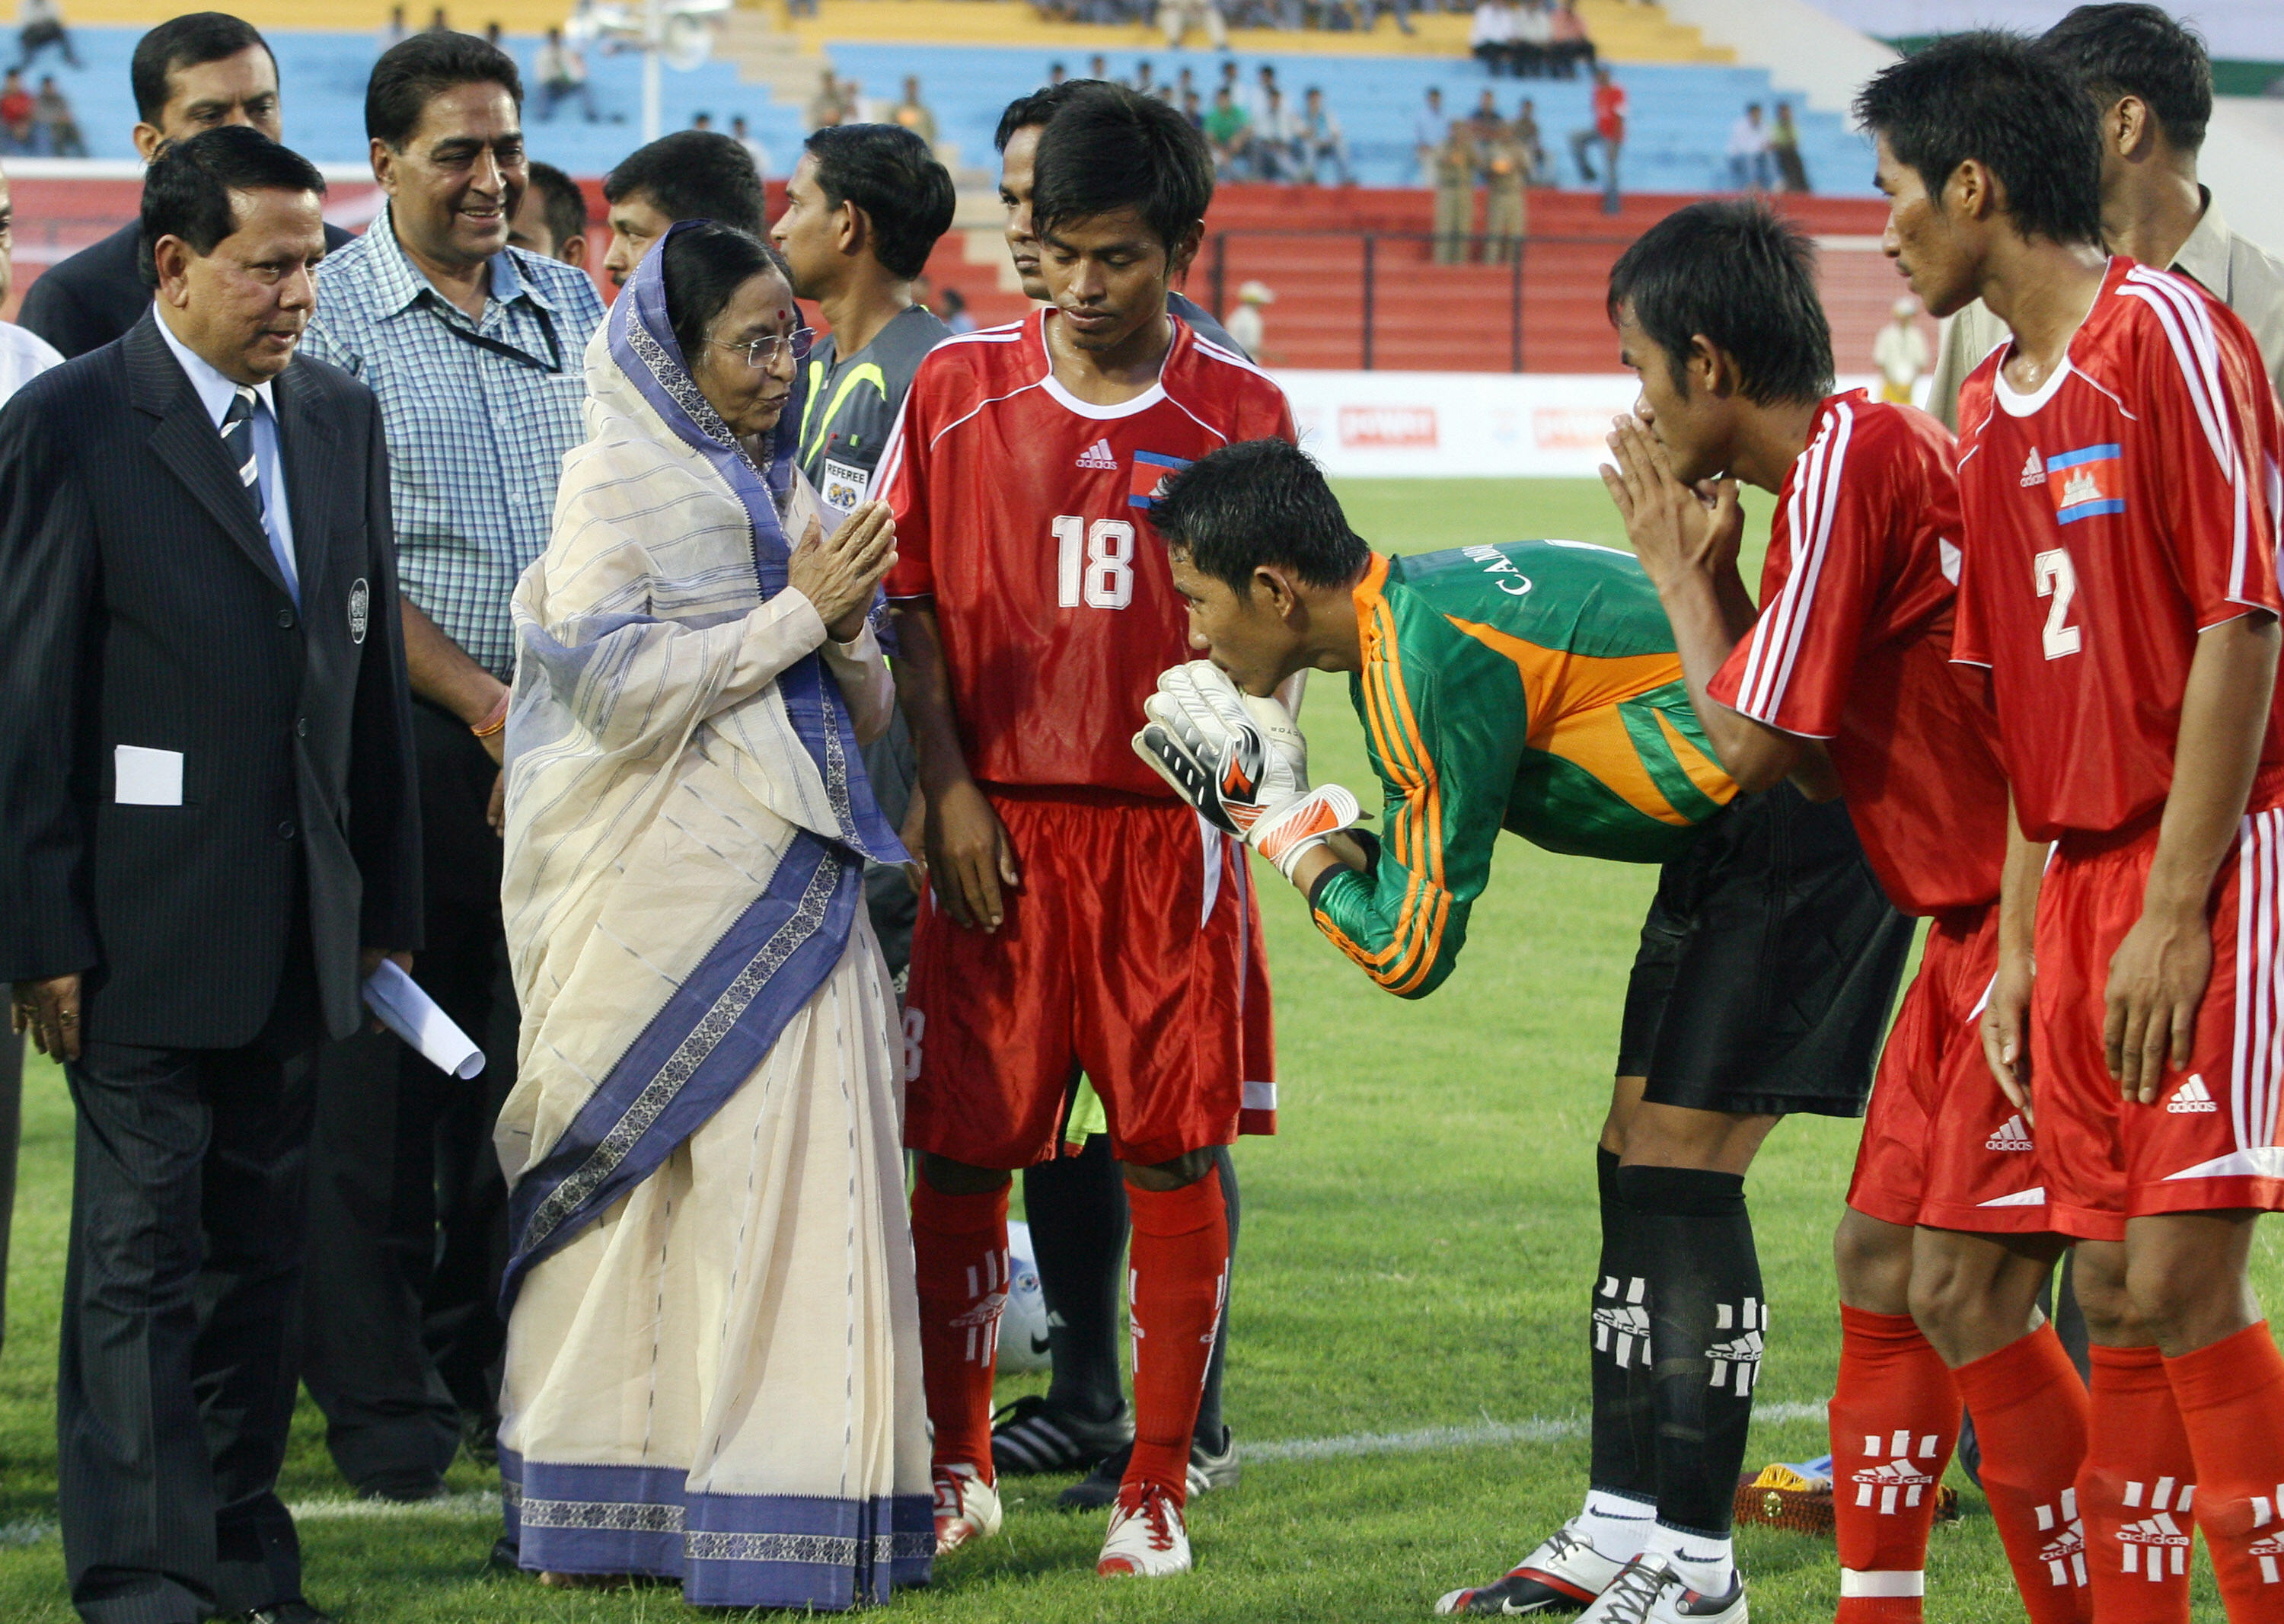 India vs Cambodia Nehru Cup 2007